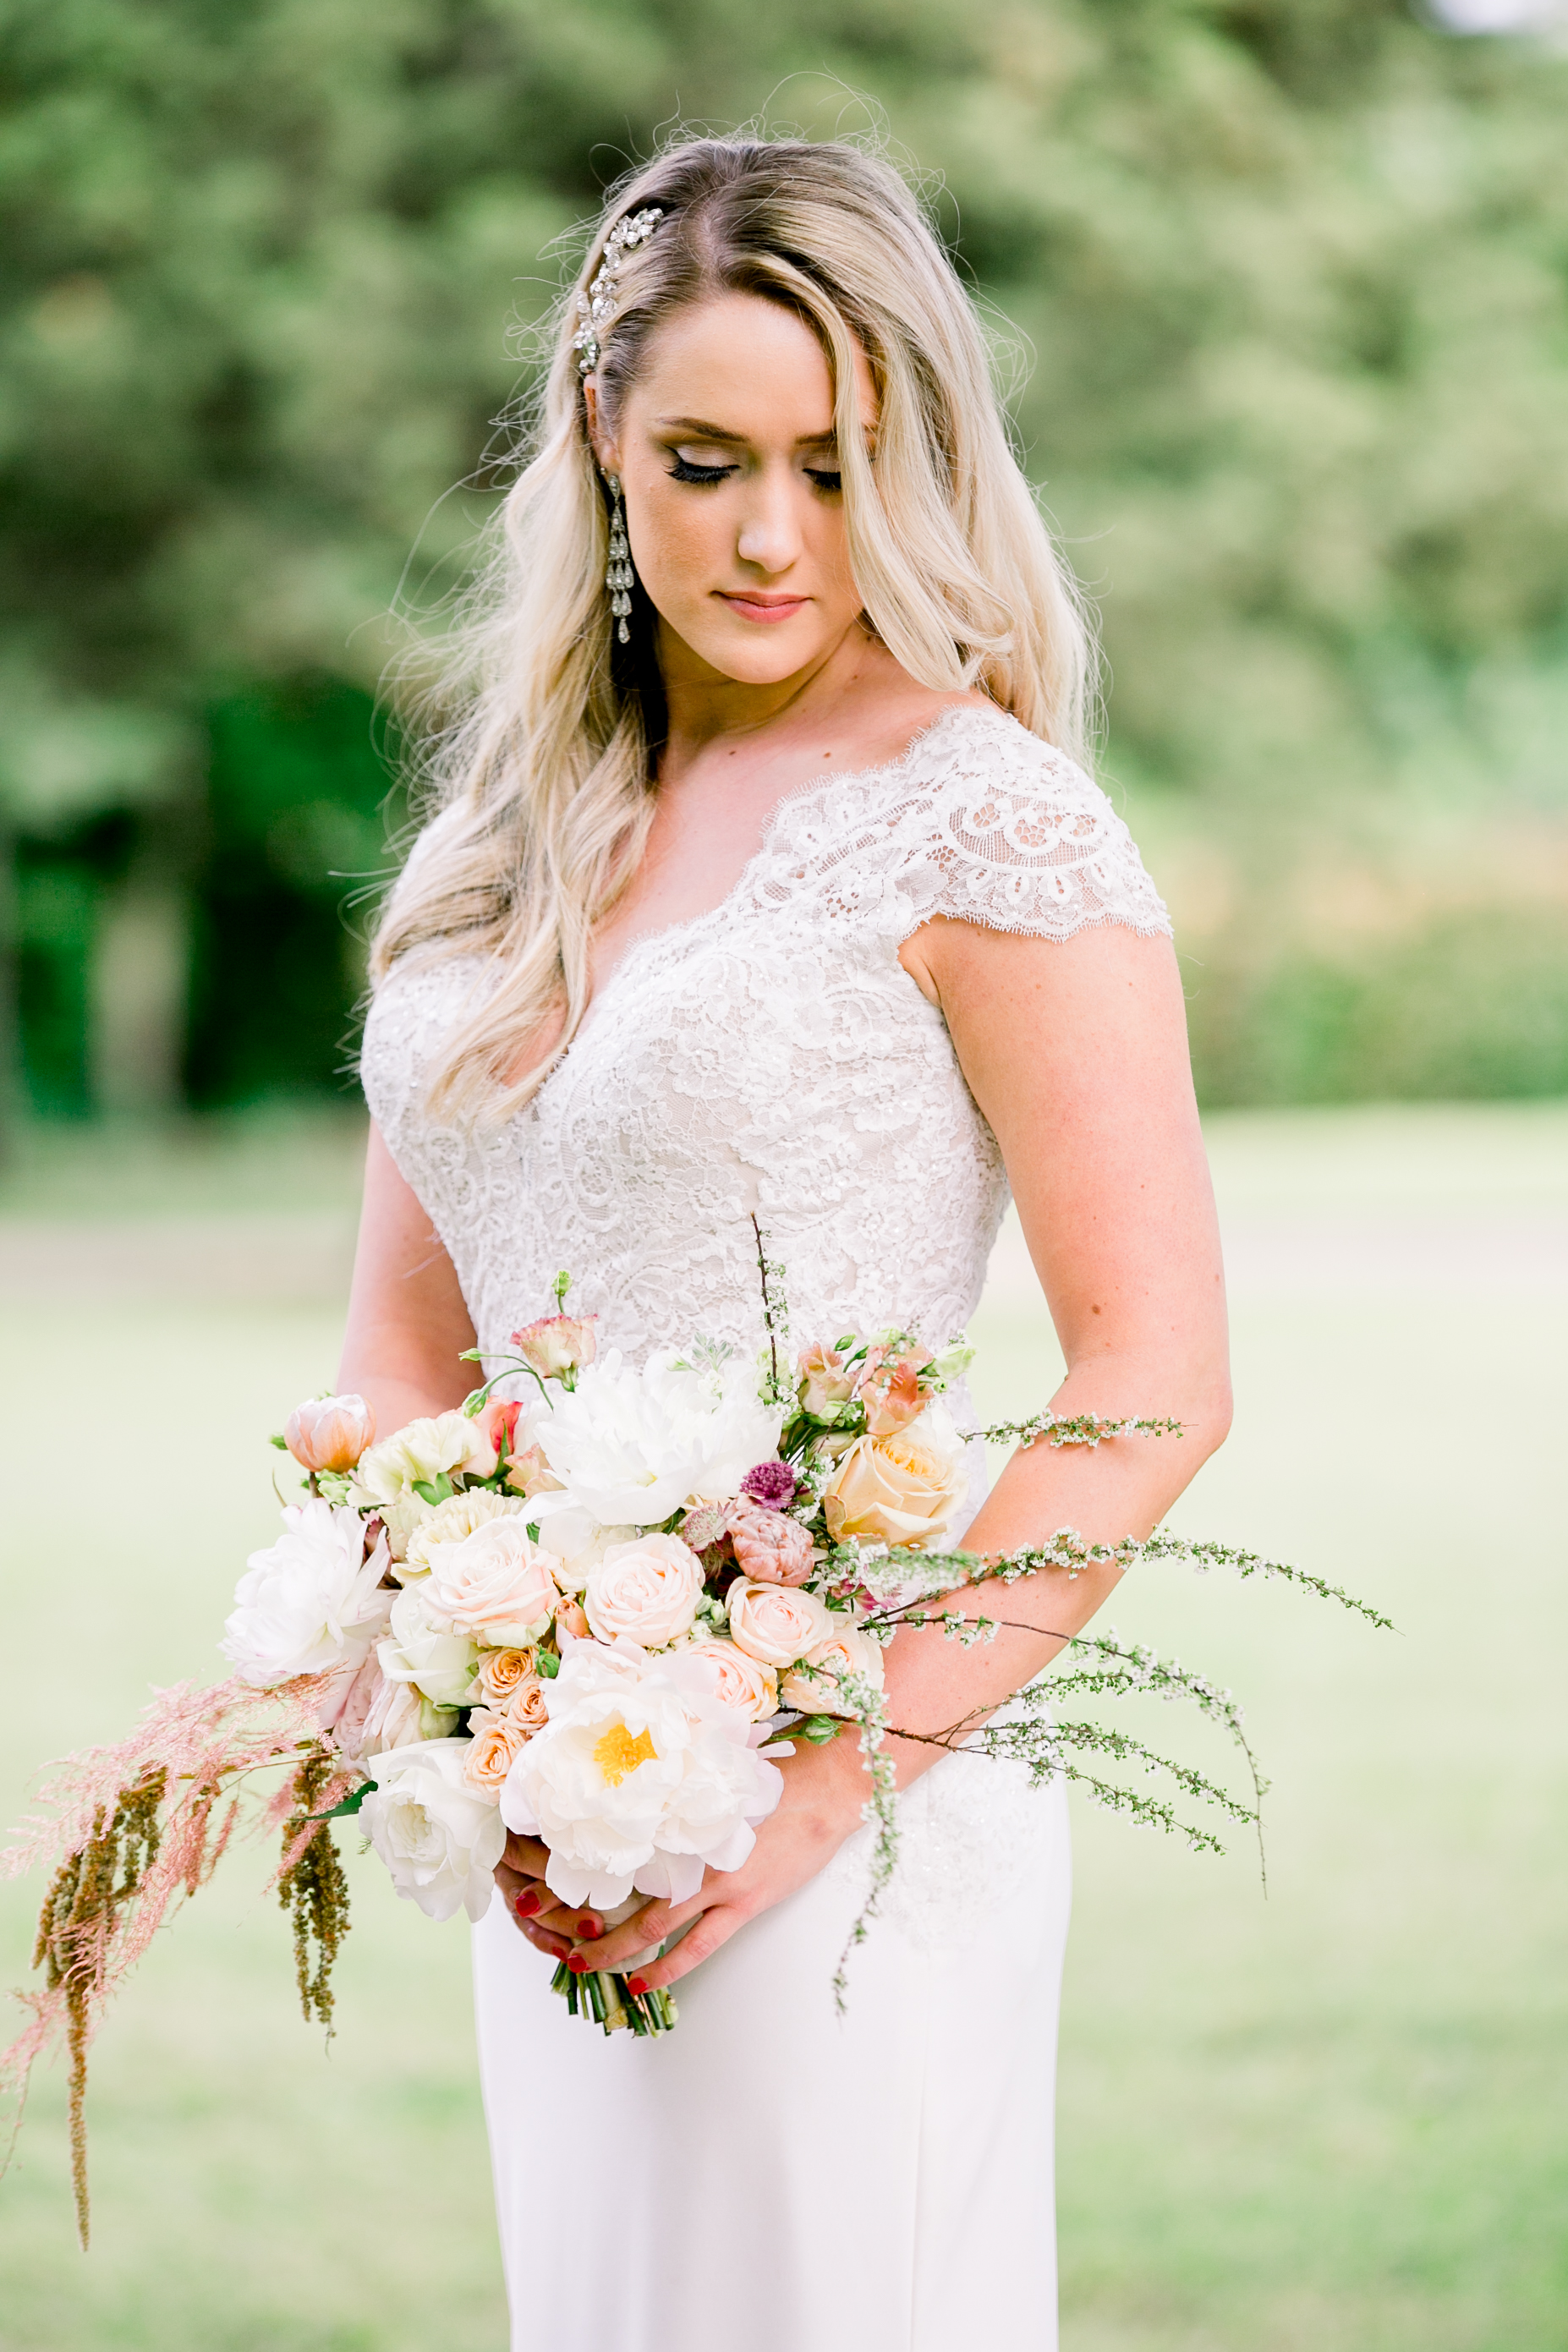 My jaw literally DROPPED when I saw the dress, flowers and stunning model all together! We were seriously blessed to work with so many talented Oklahoma artists!